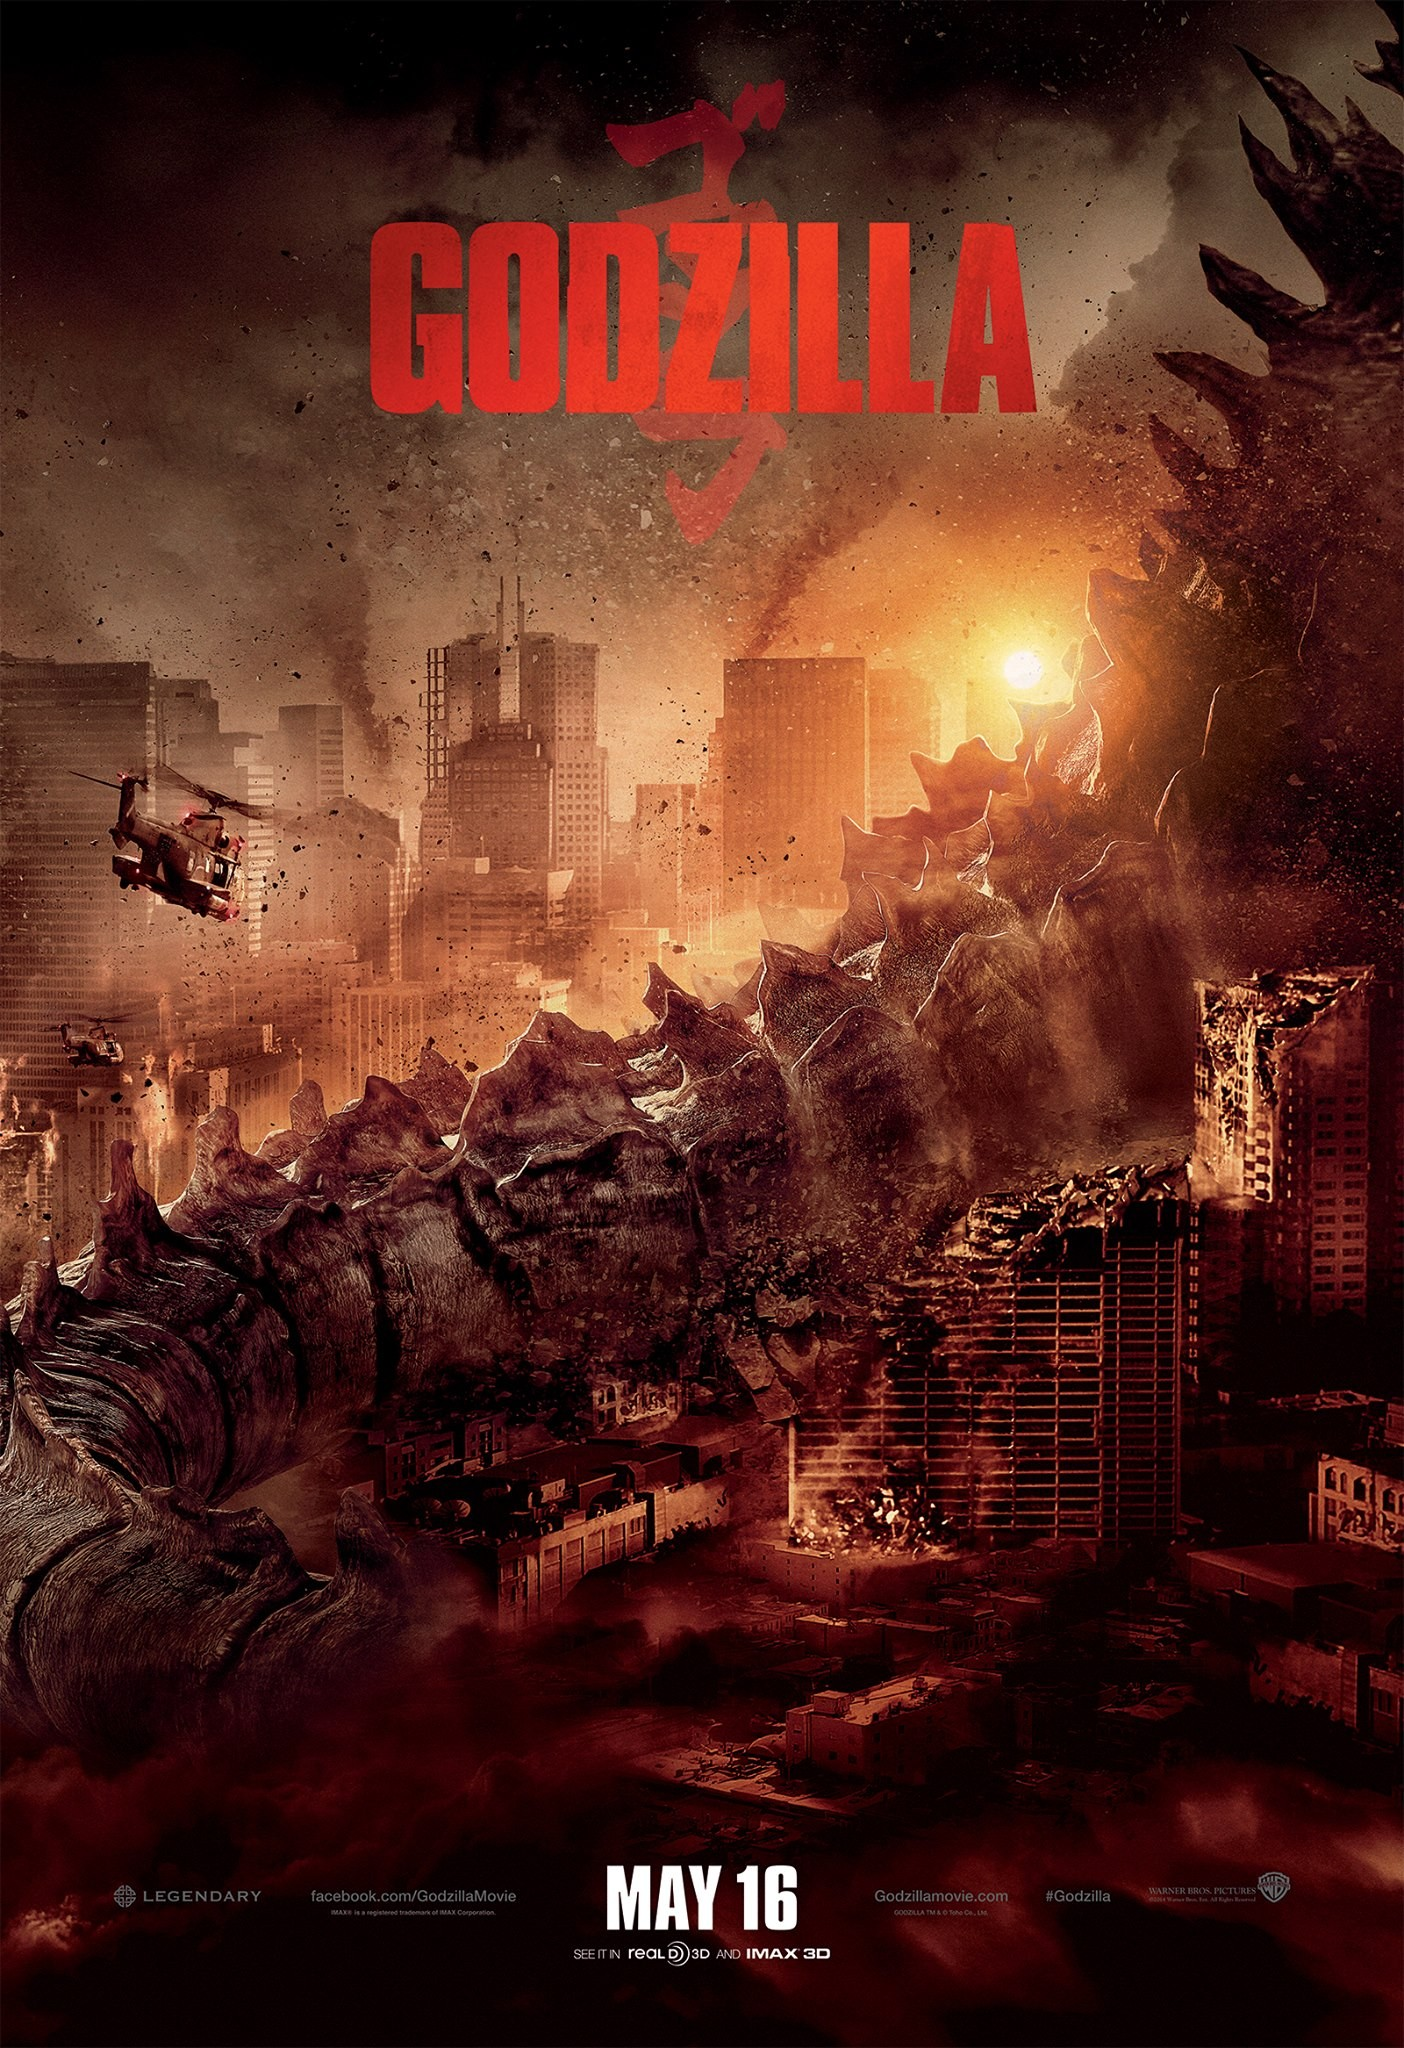 Godzilla Movie Poster.jpg